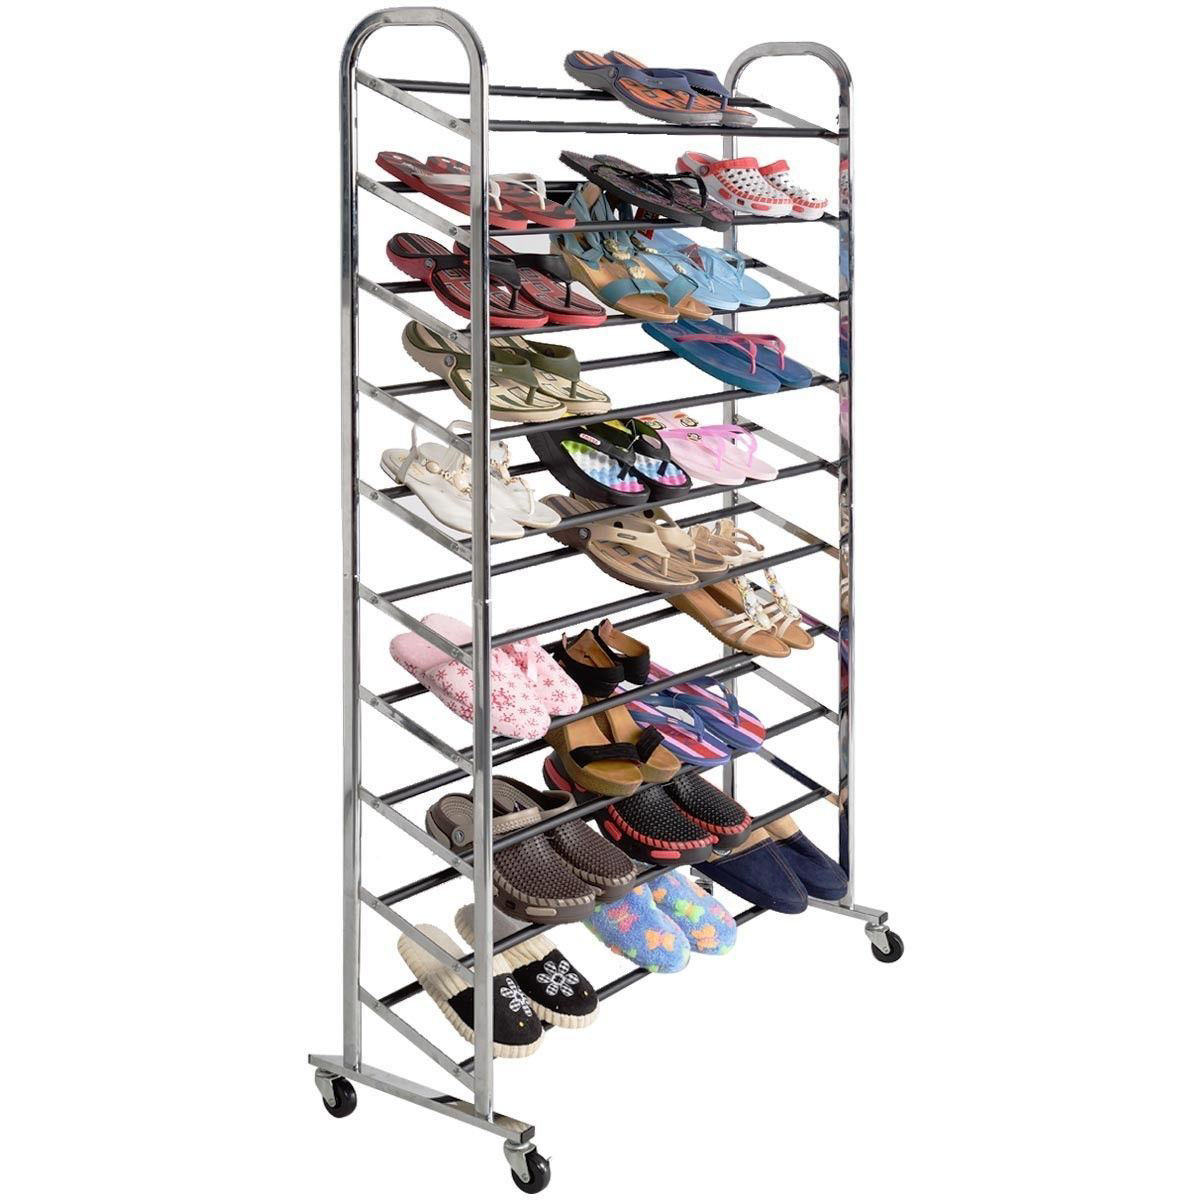 Picture of Shoe Rack Tower Chrome Metal 50 Pair